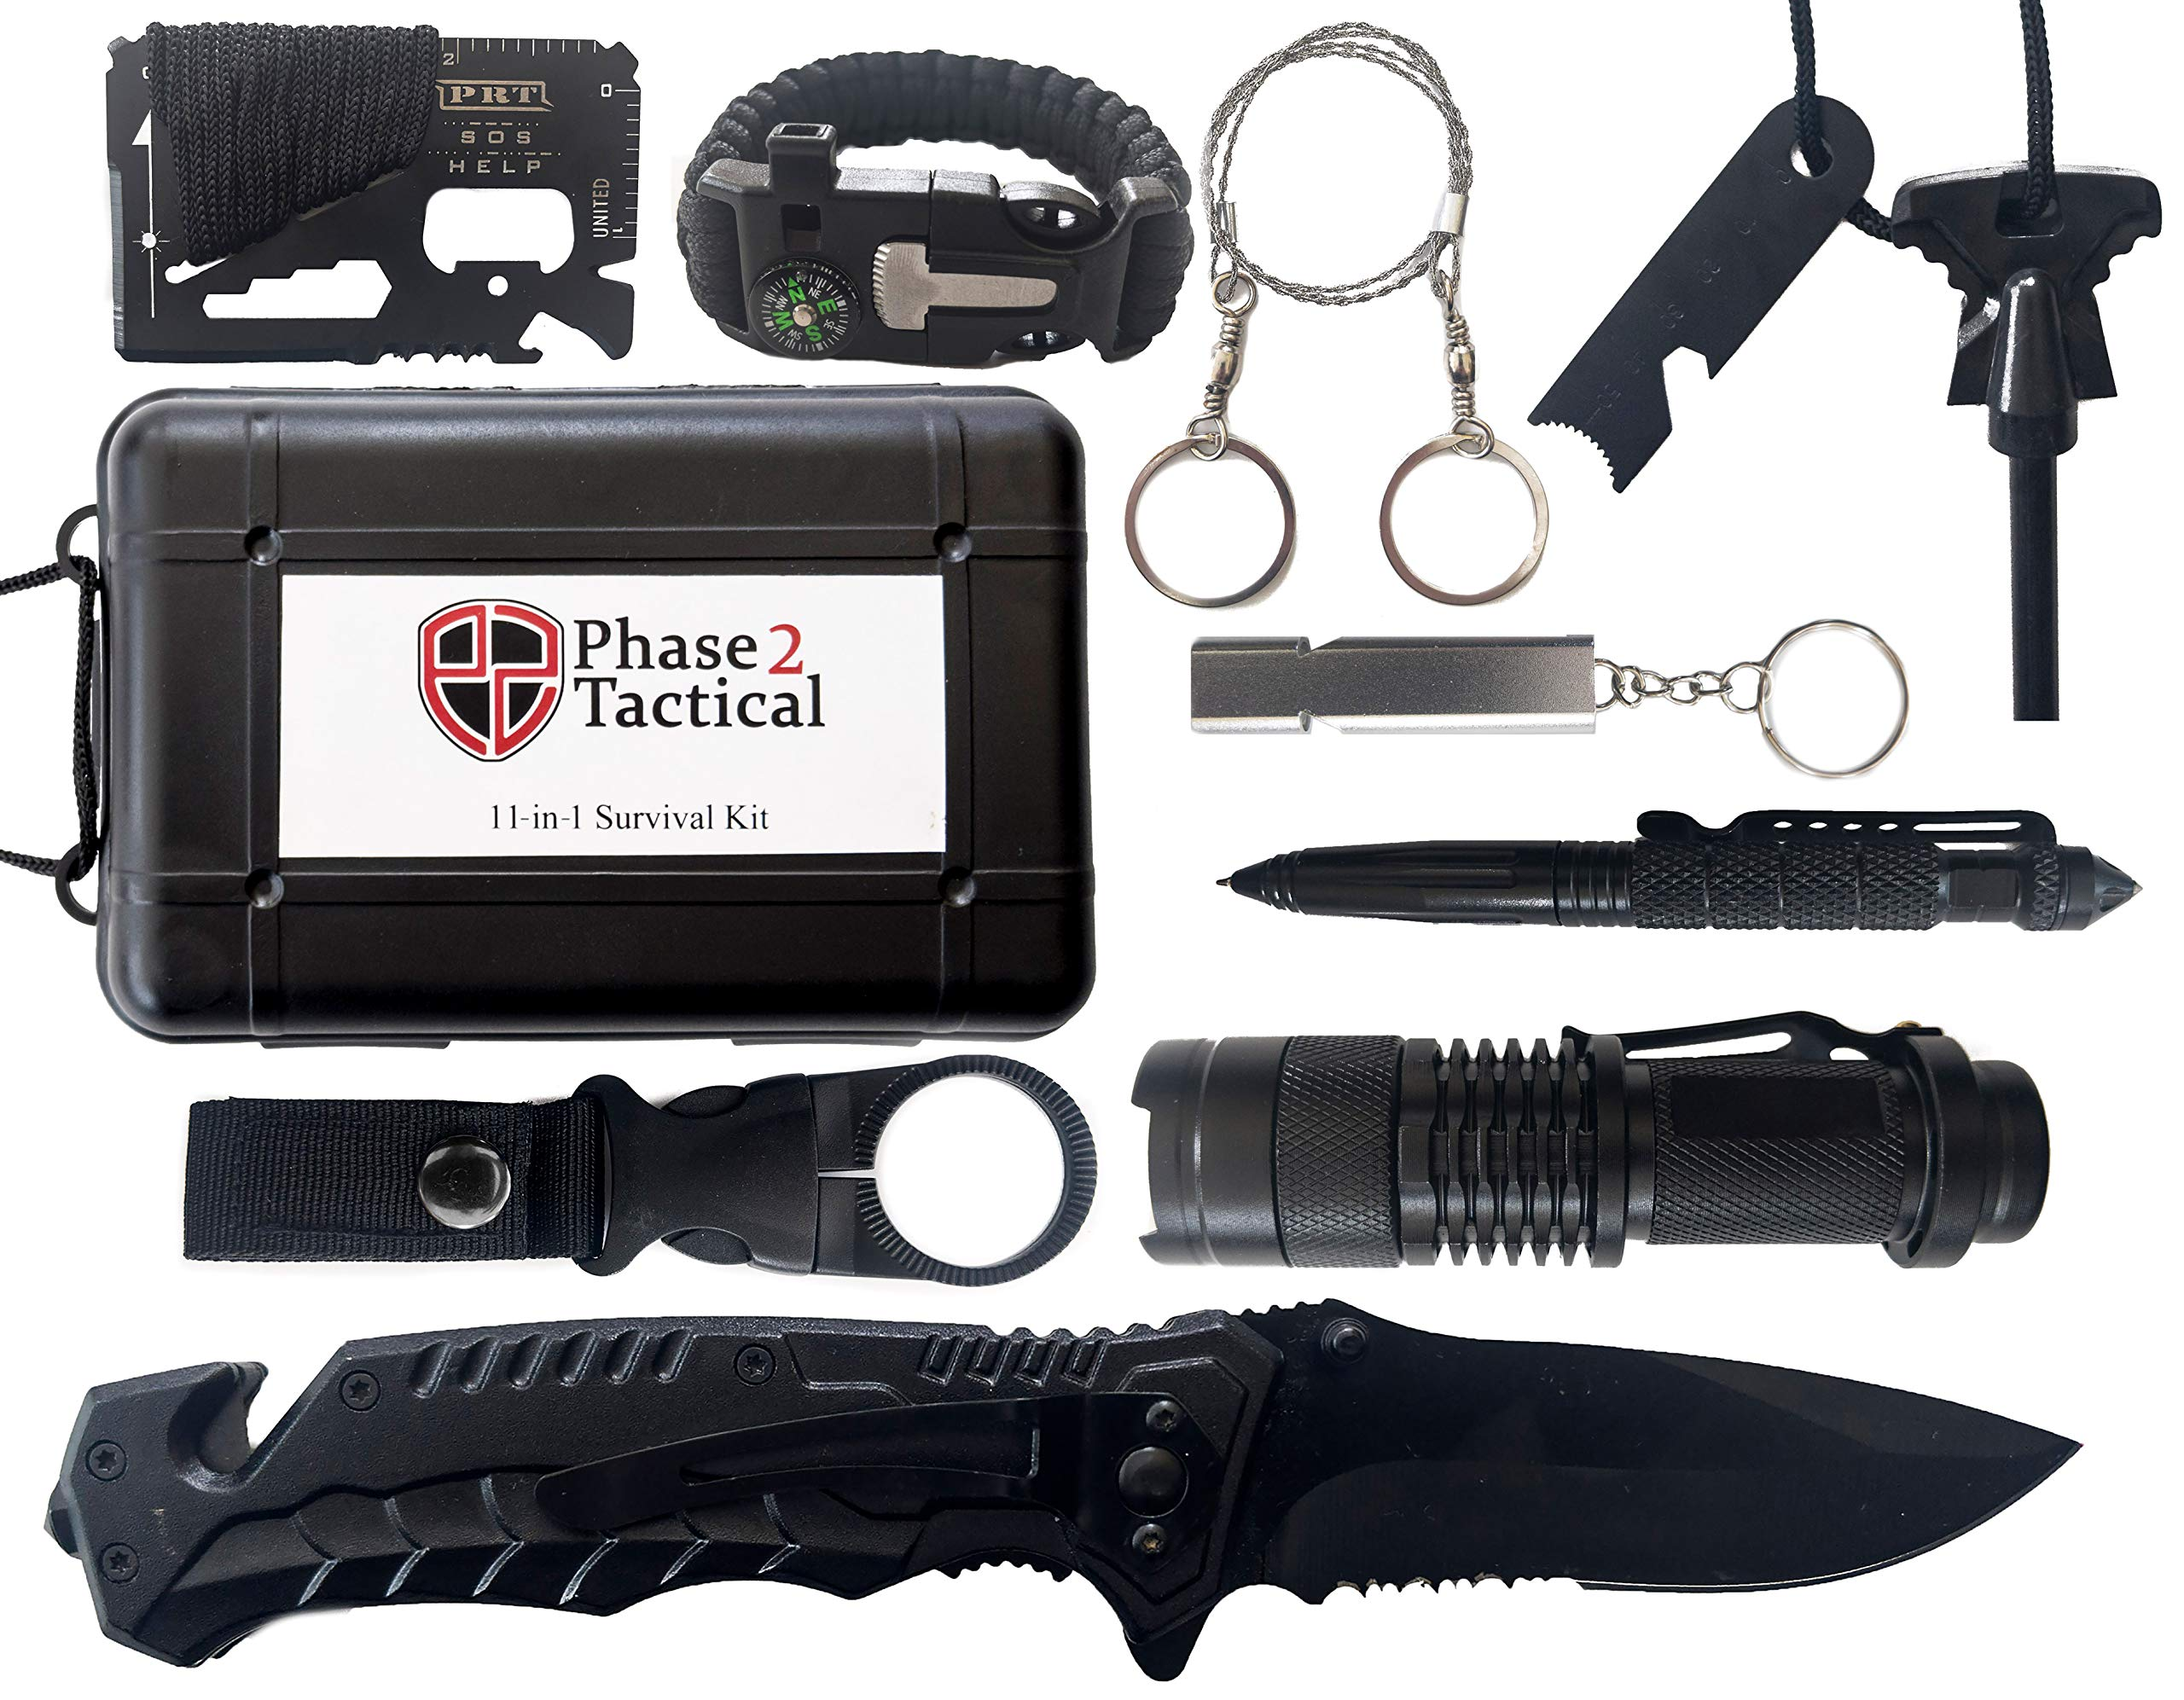 Phase 2 Tactical 11-in-1 Survival Kit - Outdoor Emergency Gear & Gadgets for Any Situation - Great for Camping, Hiking, Hunting, Fishing, Emergencies & More by Phase 2 Tactical